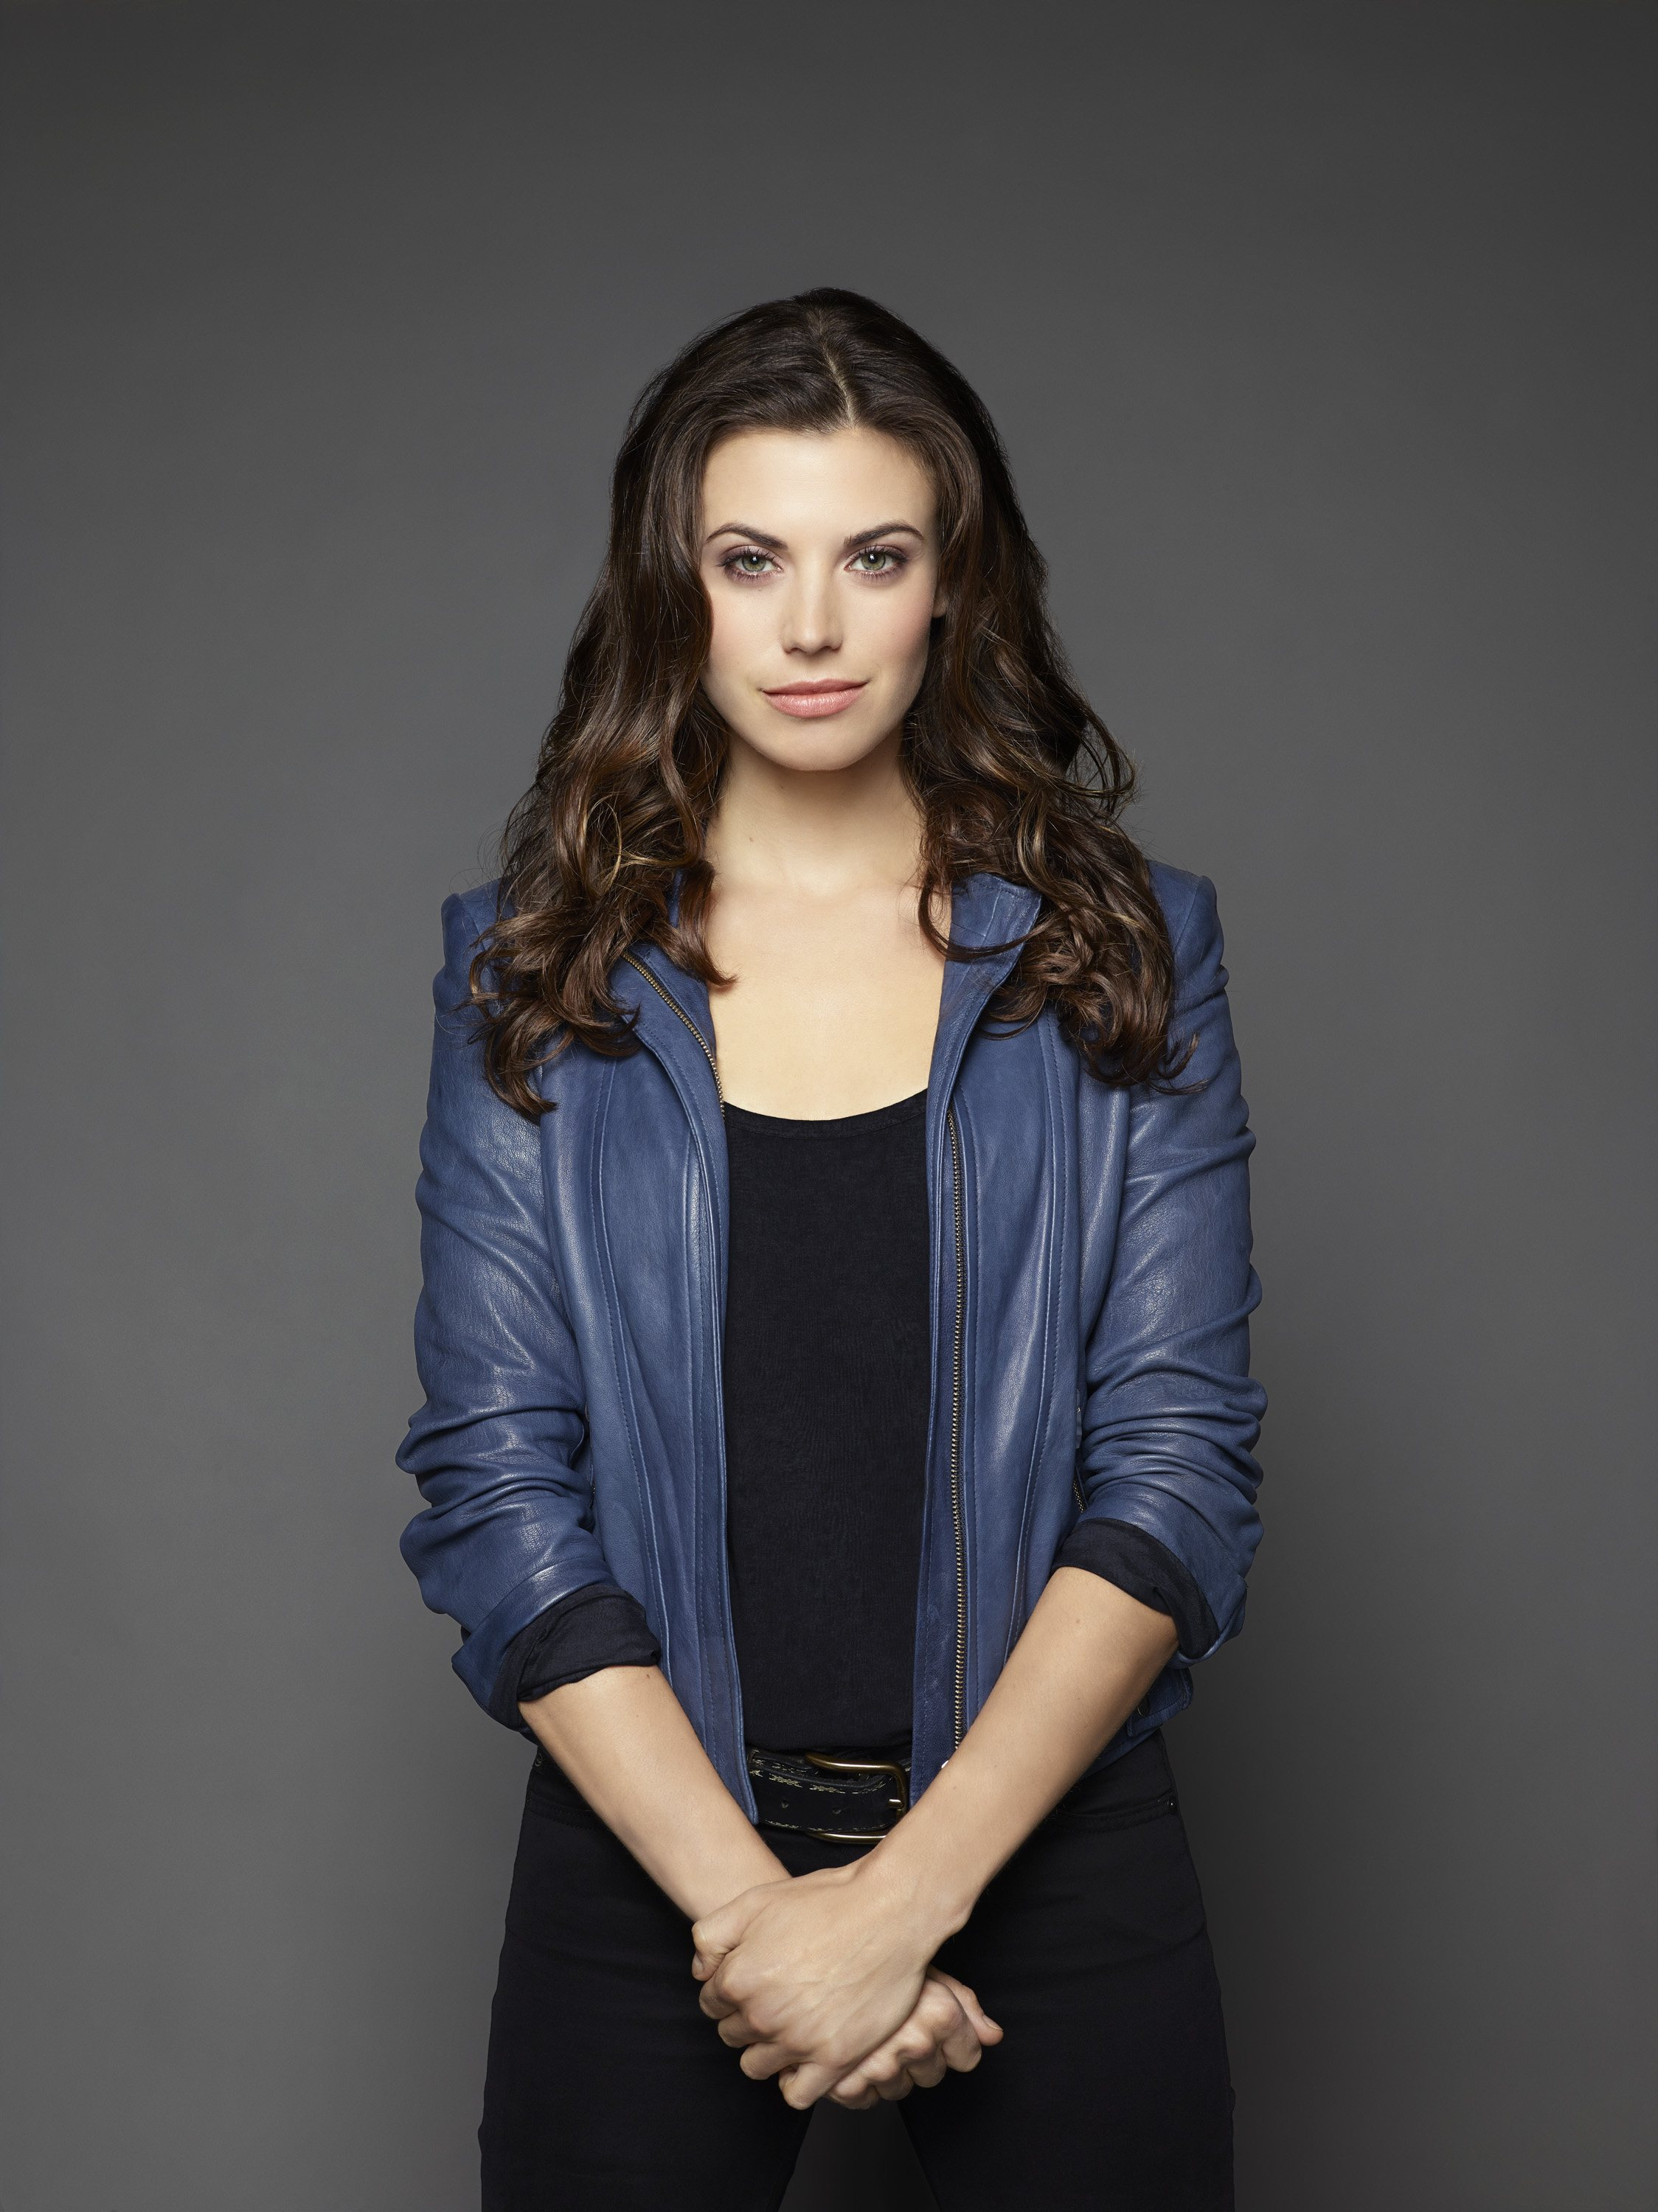 Meghan Ory Images For Phone